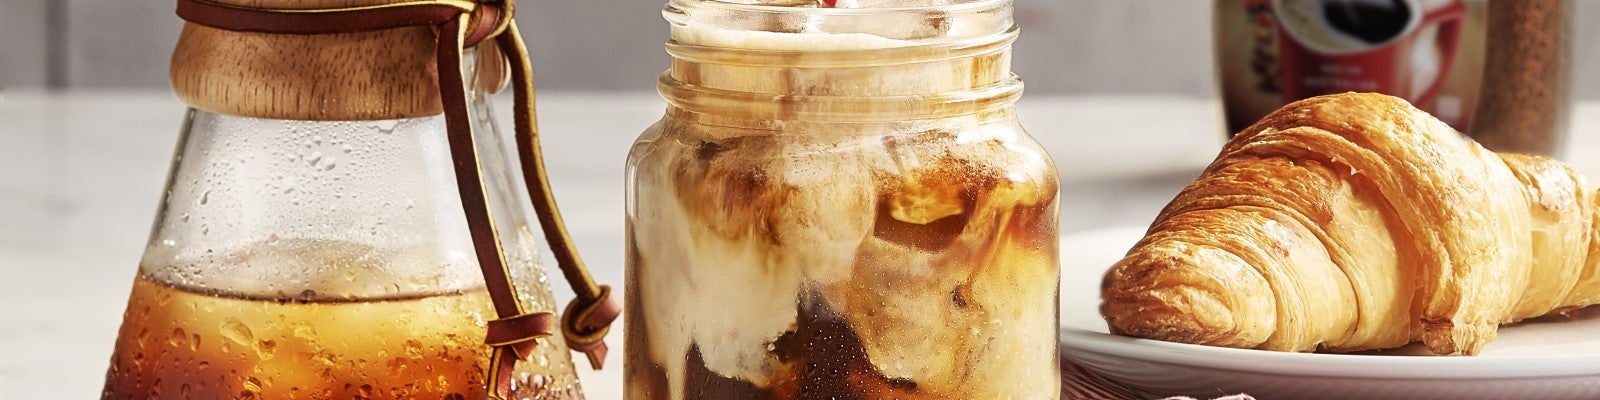 Nescafe Iced Coffee recipe